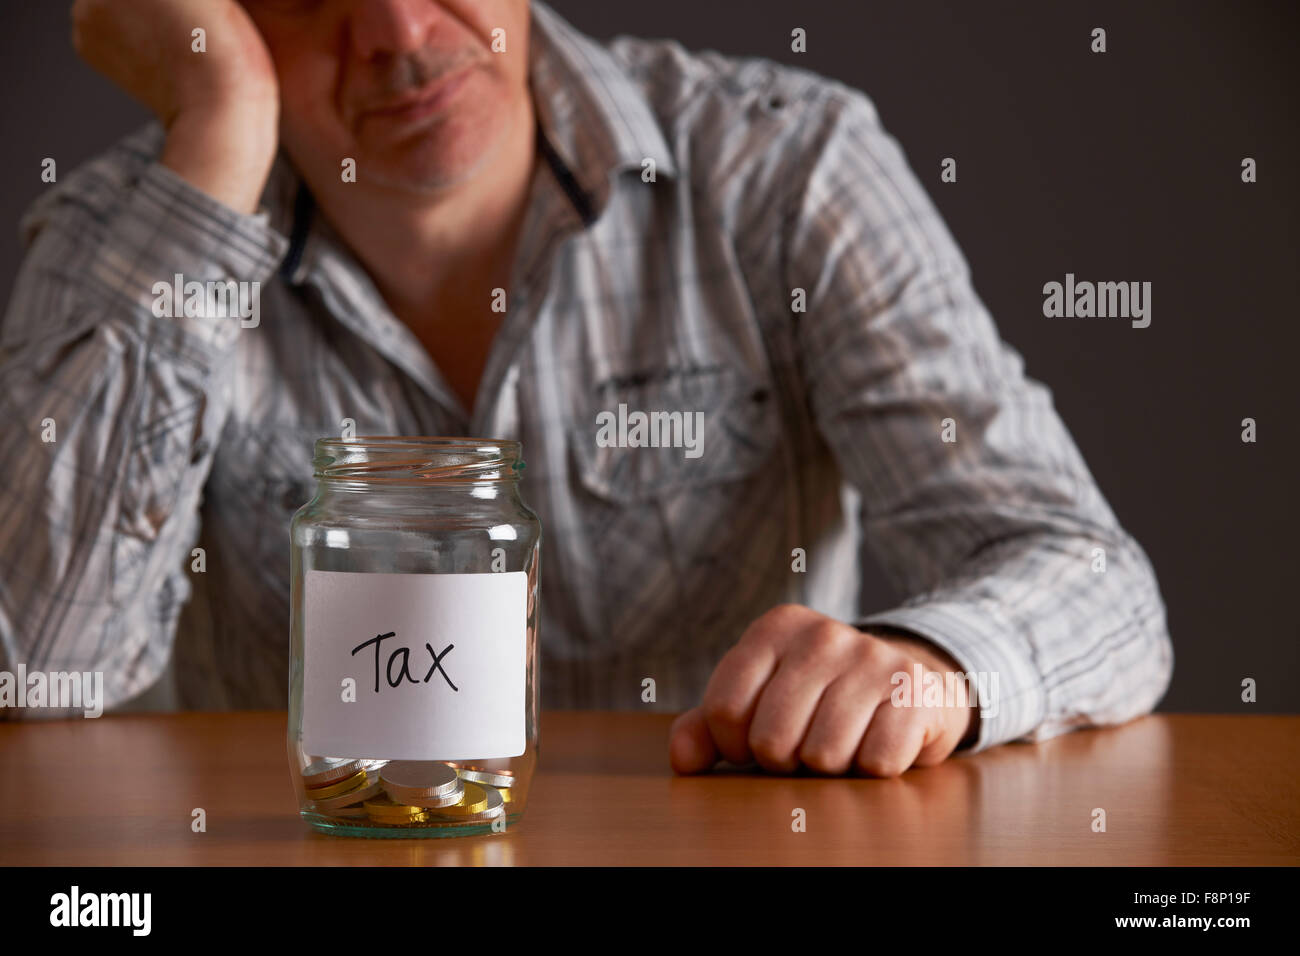 Depressed Man Looking At Empty Jar Labelled Tax Stock Photo